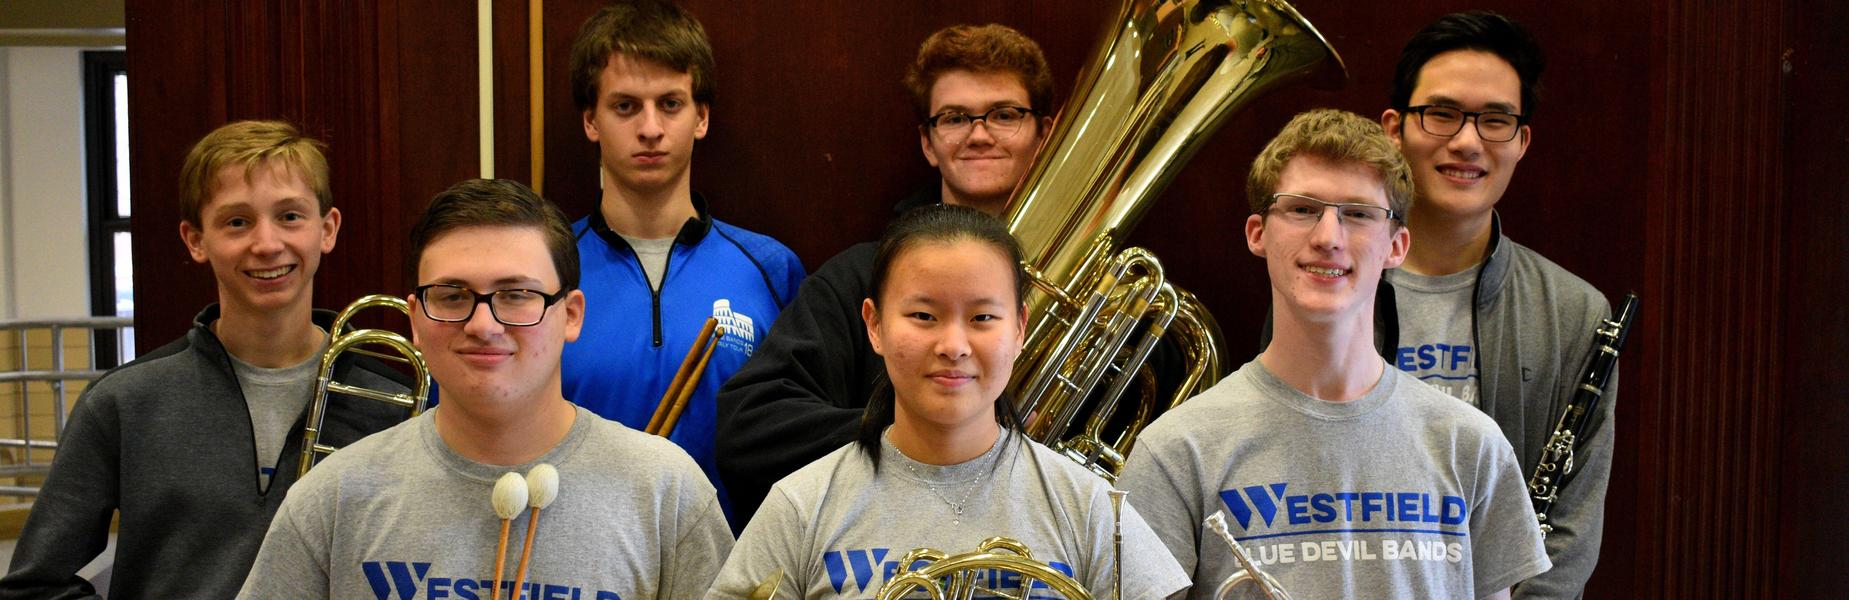 Westfield High School student musicians selected to perform this month in the Region II band and orchestra are (L-R front) Ian Gurland, Aprina Wang, Max Tennant.  (L-R back) Conor Daly, David Criscuolo, Patrick Gallagher, and Alexander Cha.